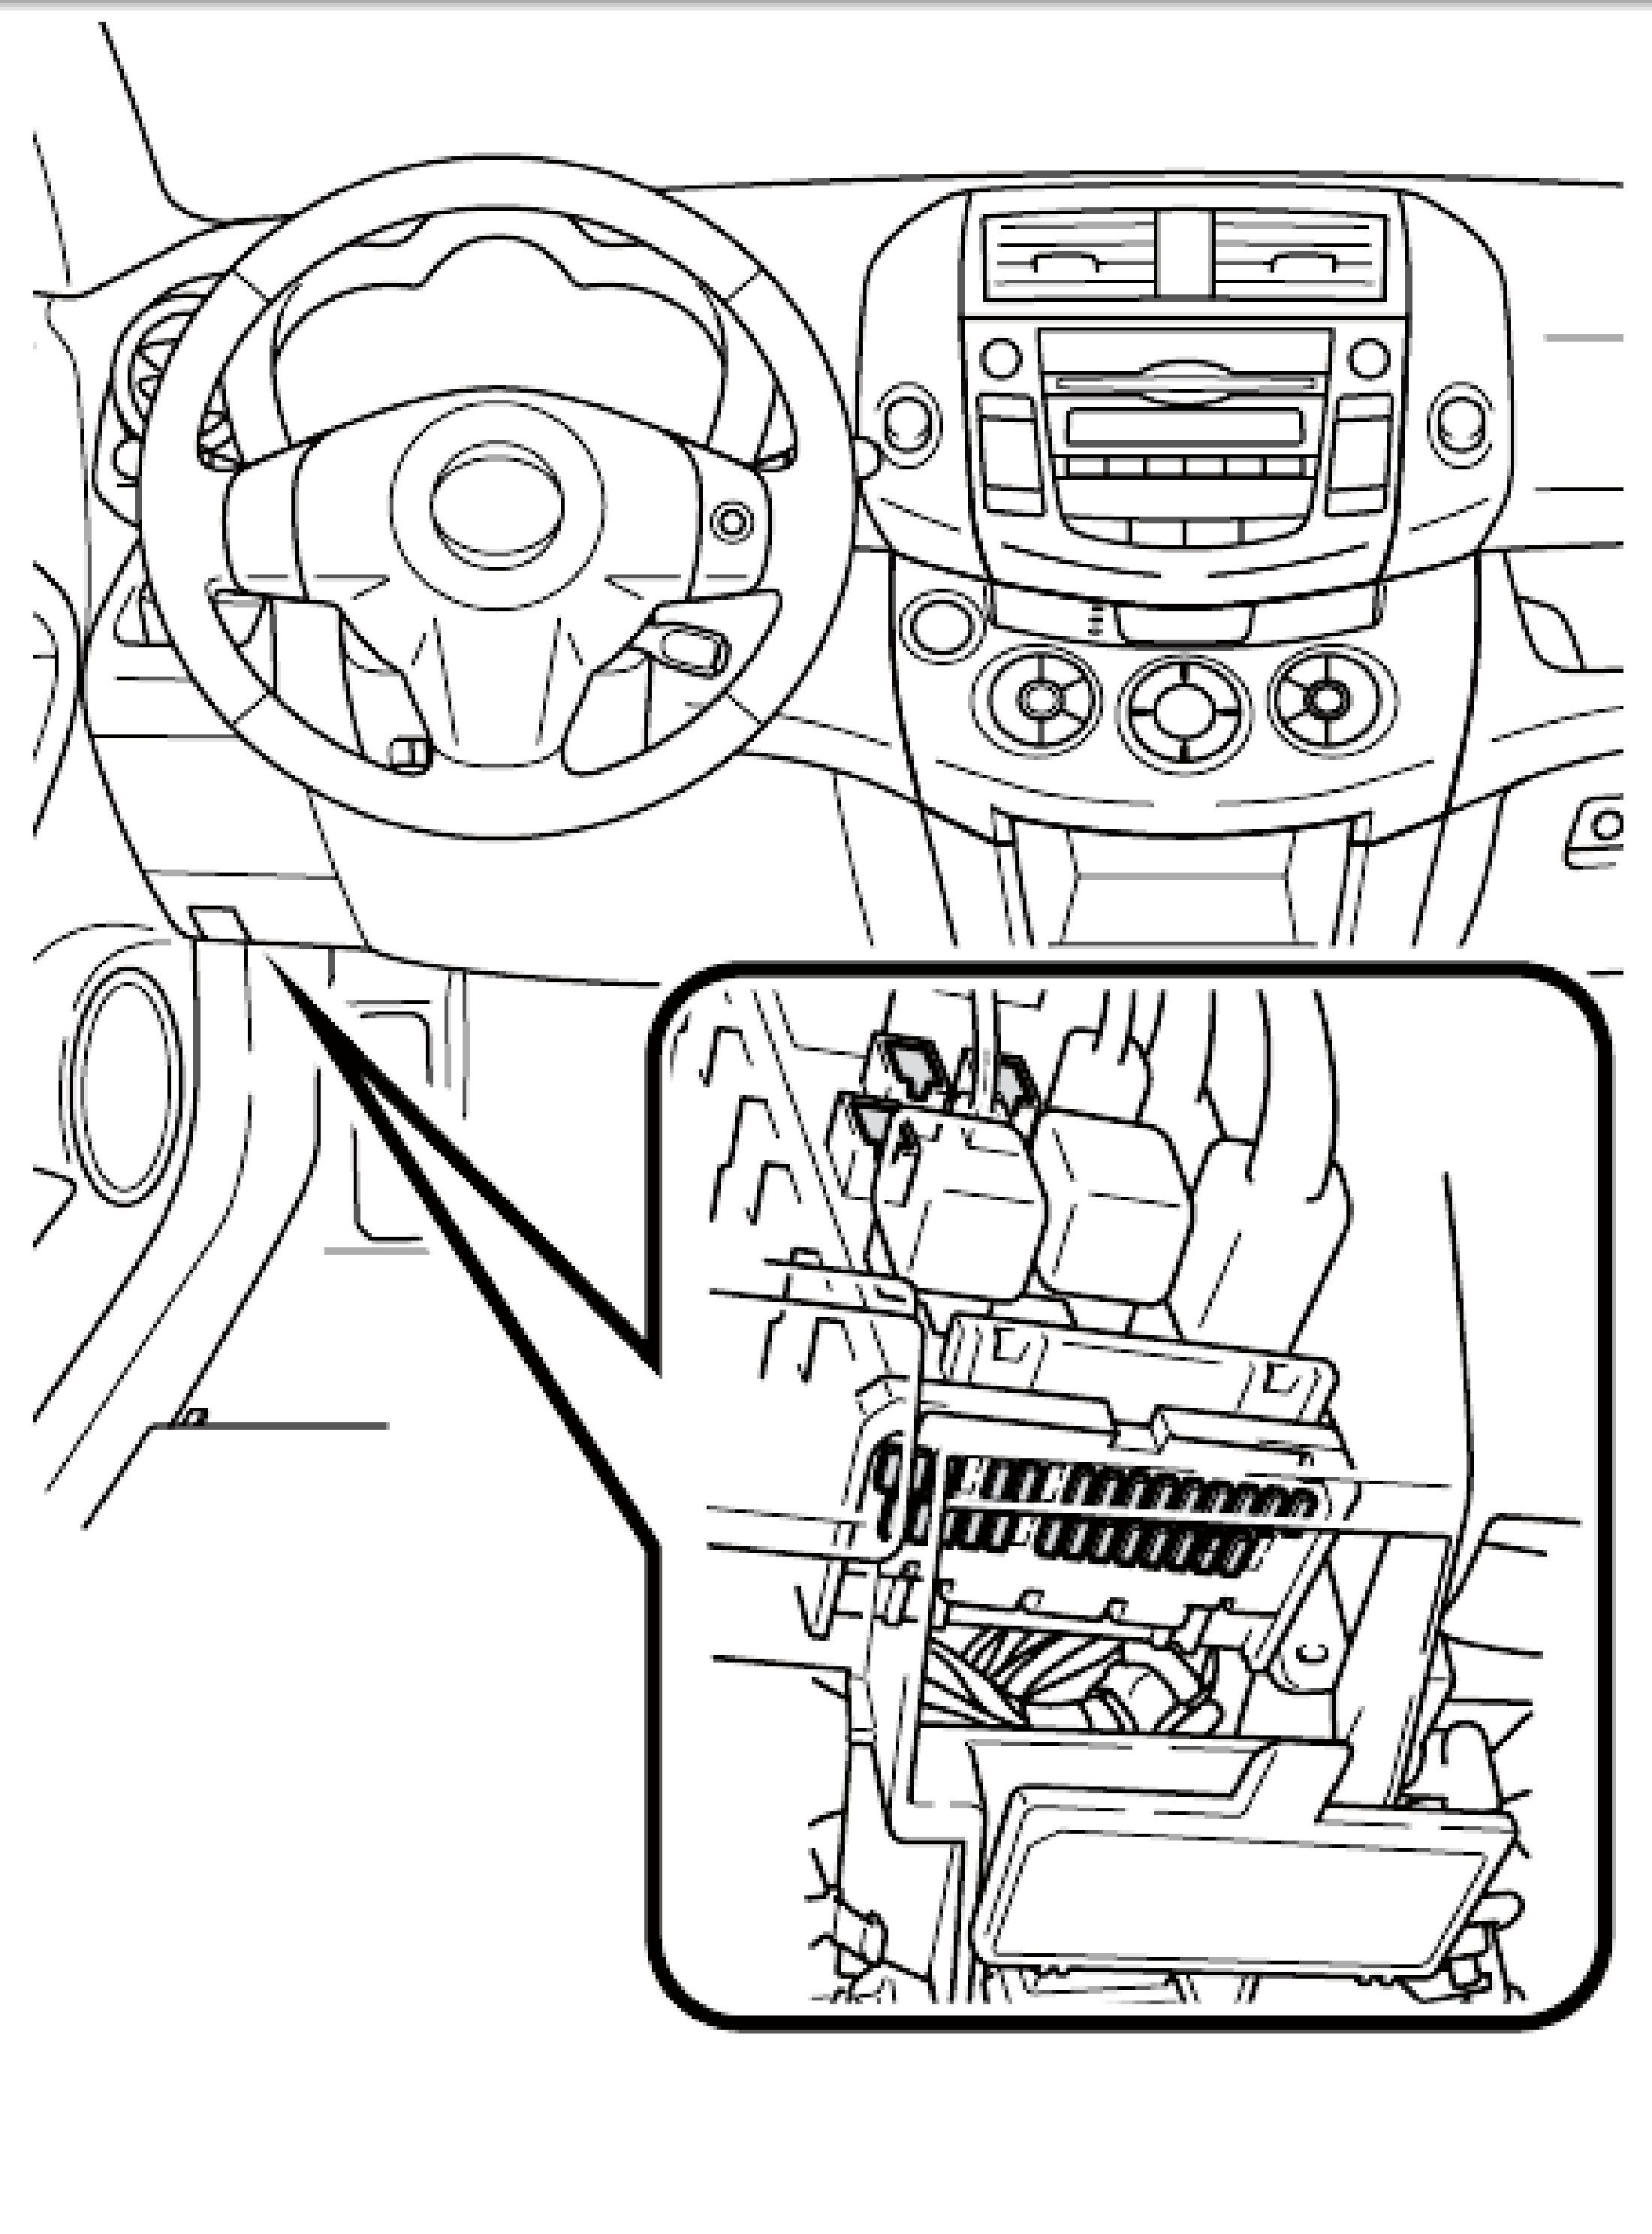 1993 toyota corolla fuse box diagram ItXOytB 1993 toyota corolla fuse box diagram image details 1992 toyota corolla fuse box diagram at fashall.co